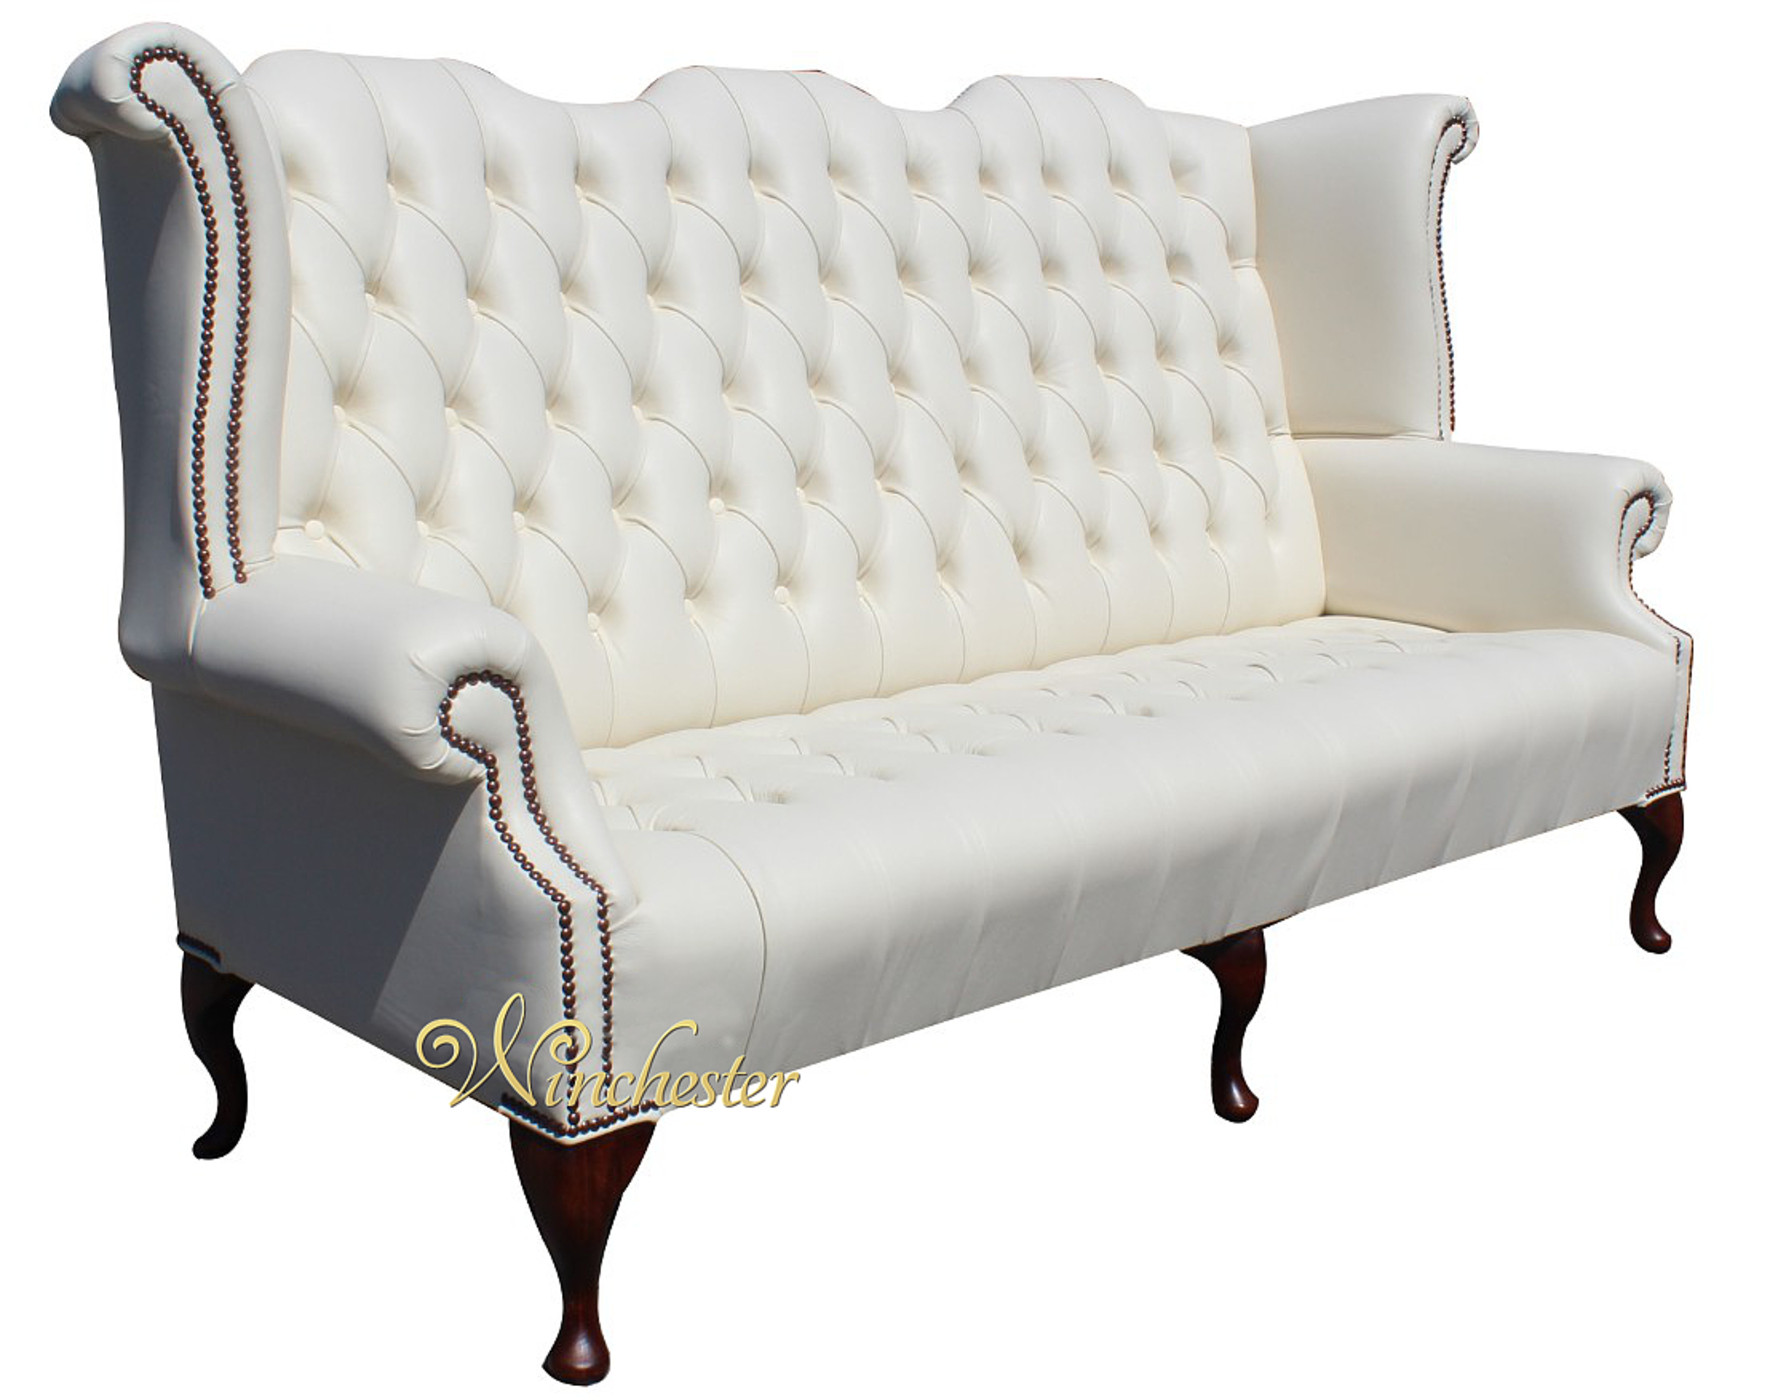 Chesterfield Newby Queen Anne Sofa Buttoned Seat Cottonseed Cream Leather Wc